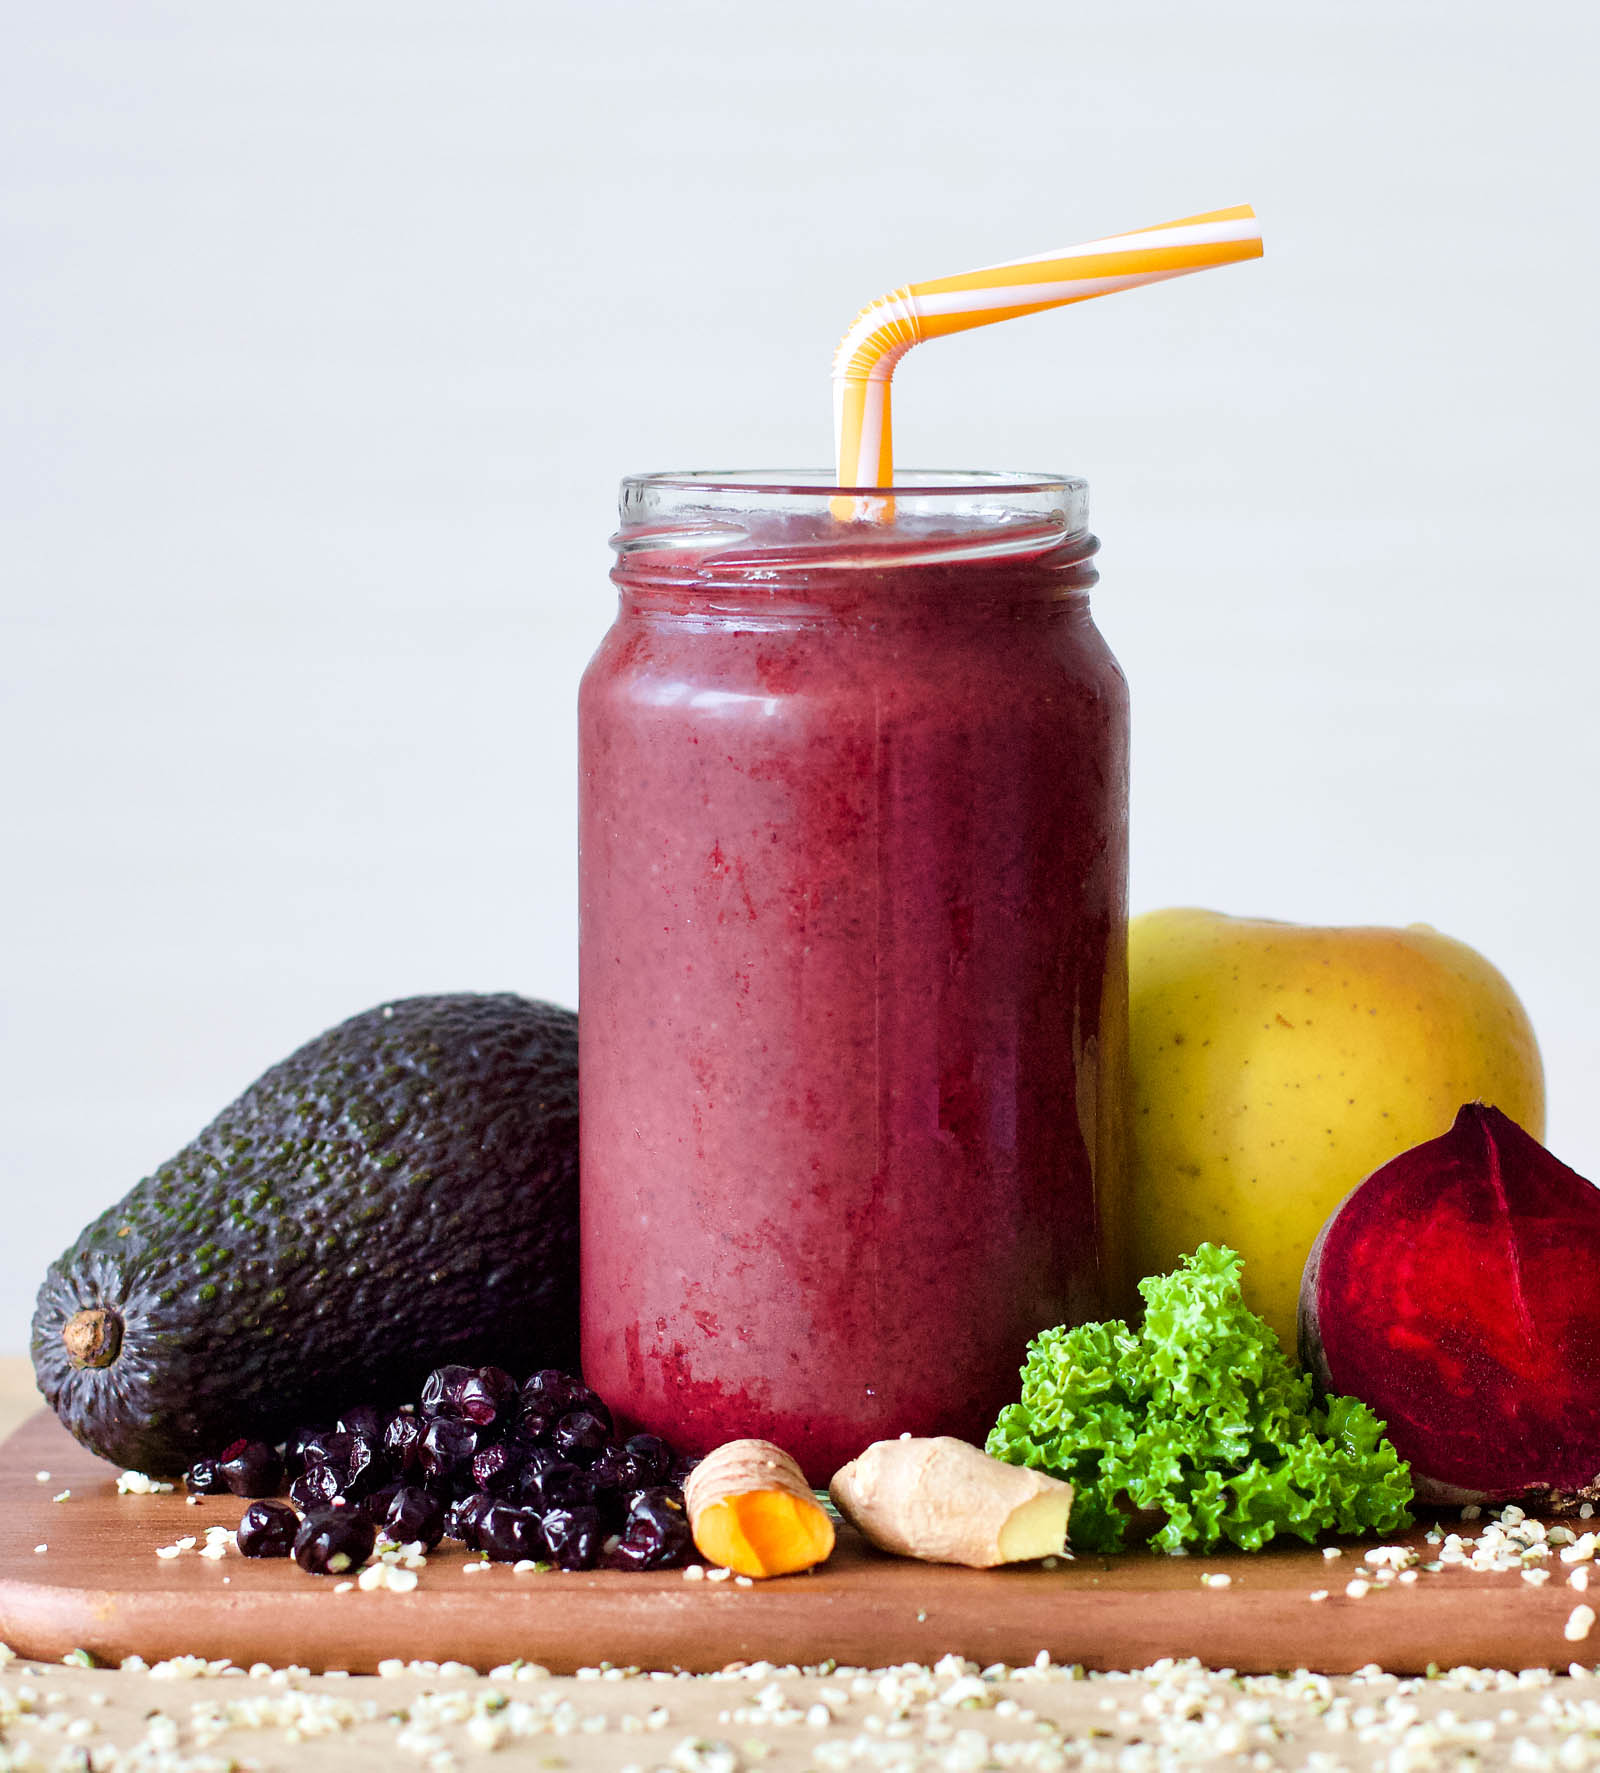 Berries and Red Beet Spicy Smoothie in a jar, fruits and vegetables around it.